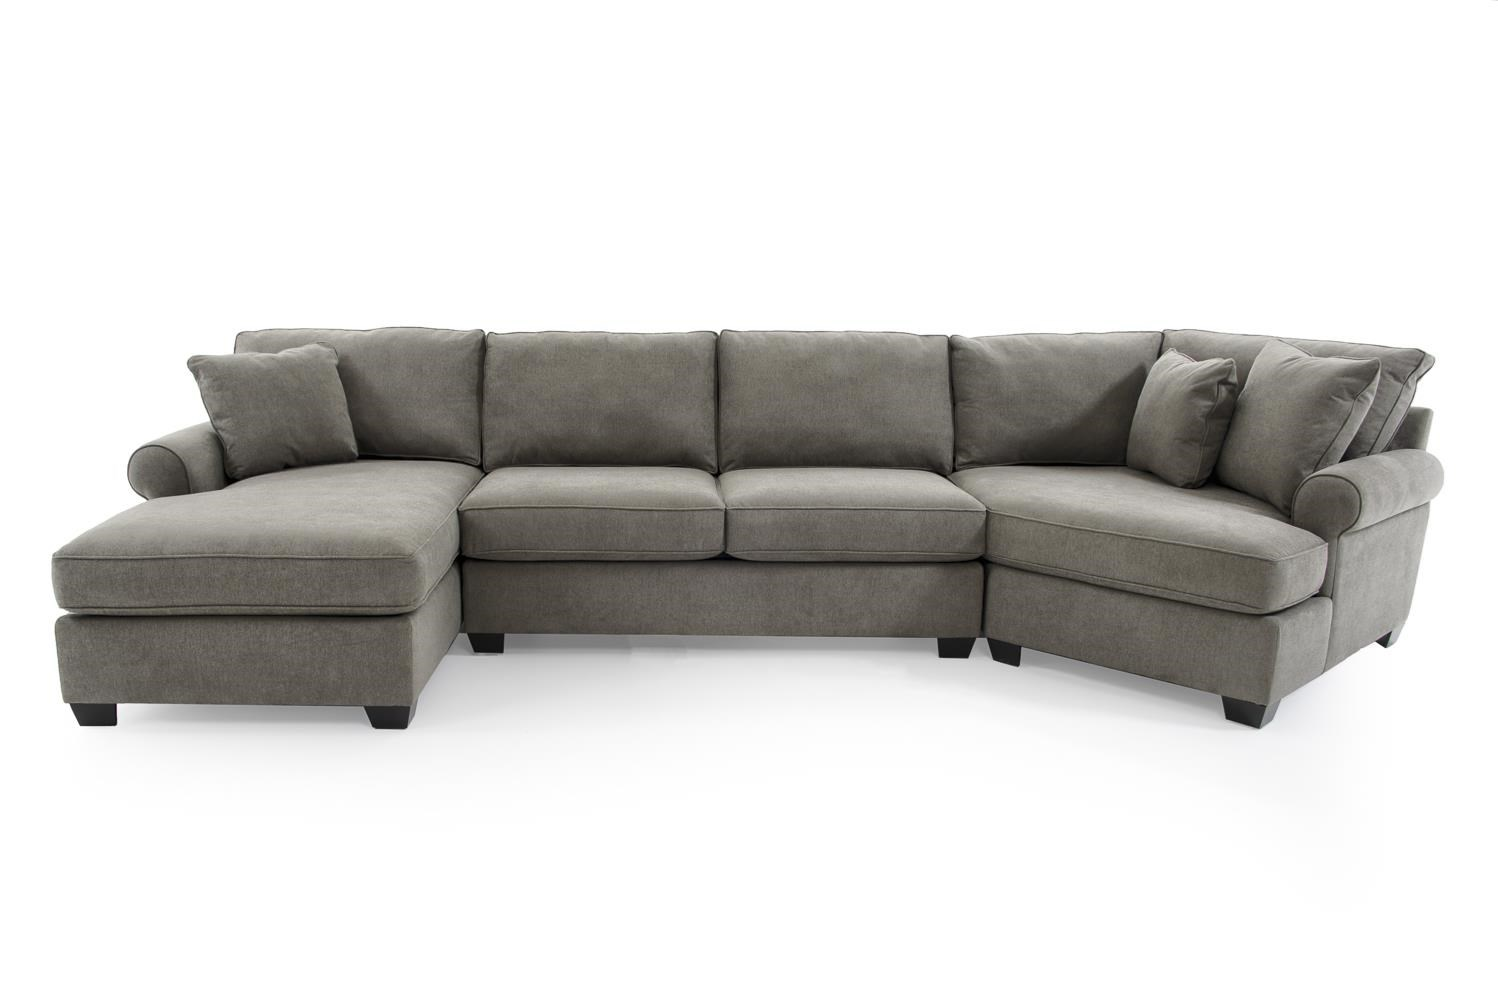 Max Home Jessica 9ba5 A Chl Saa Ccr Gray Casual Three Piece Sectional Sofa With Cuddler Baer 39 S